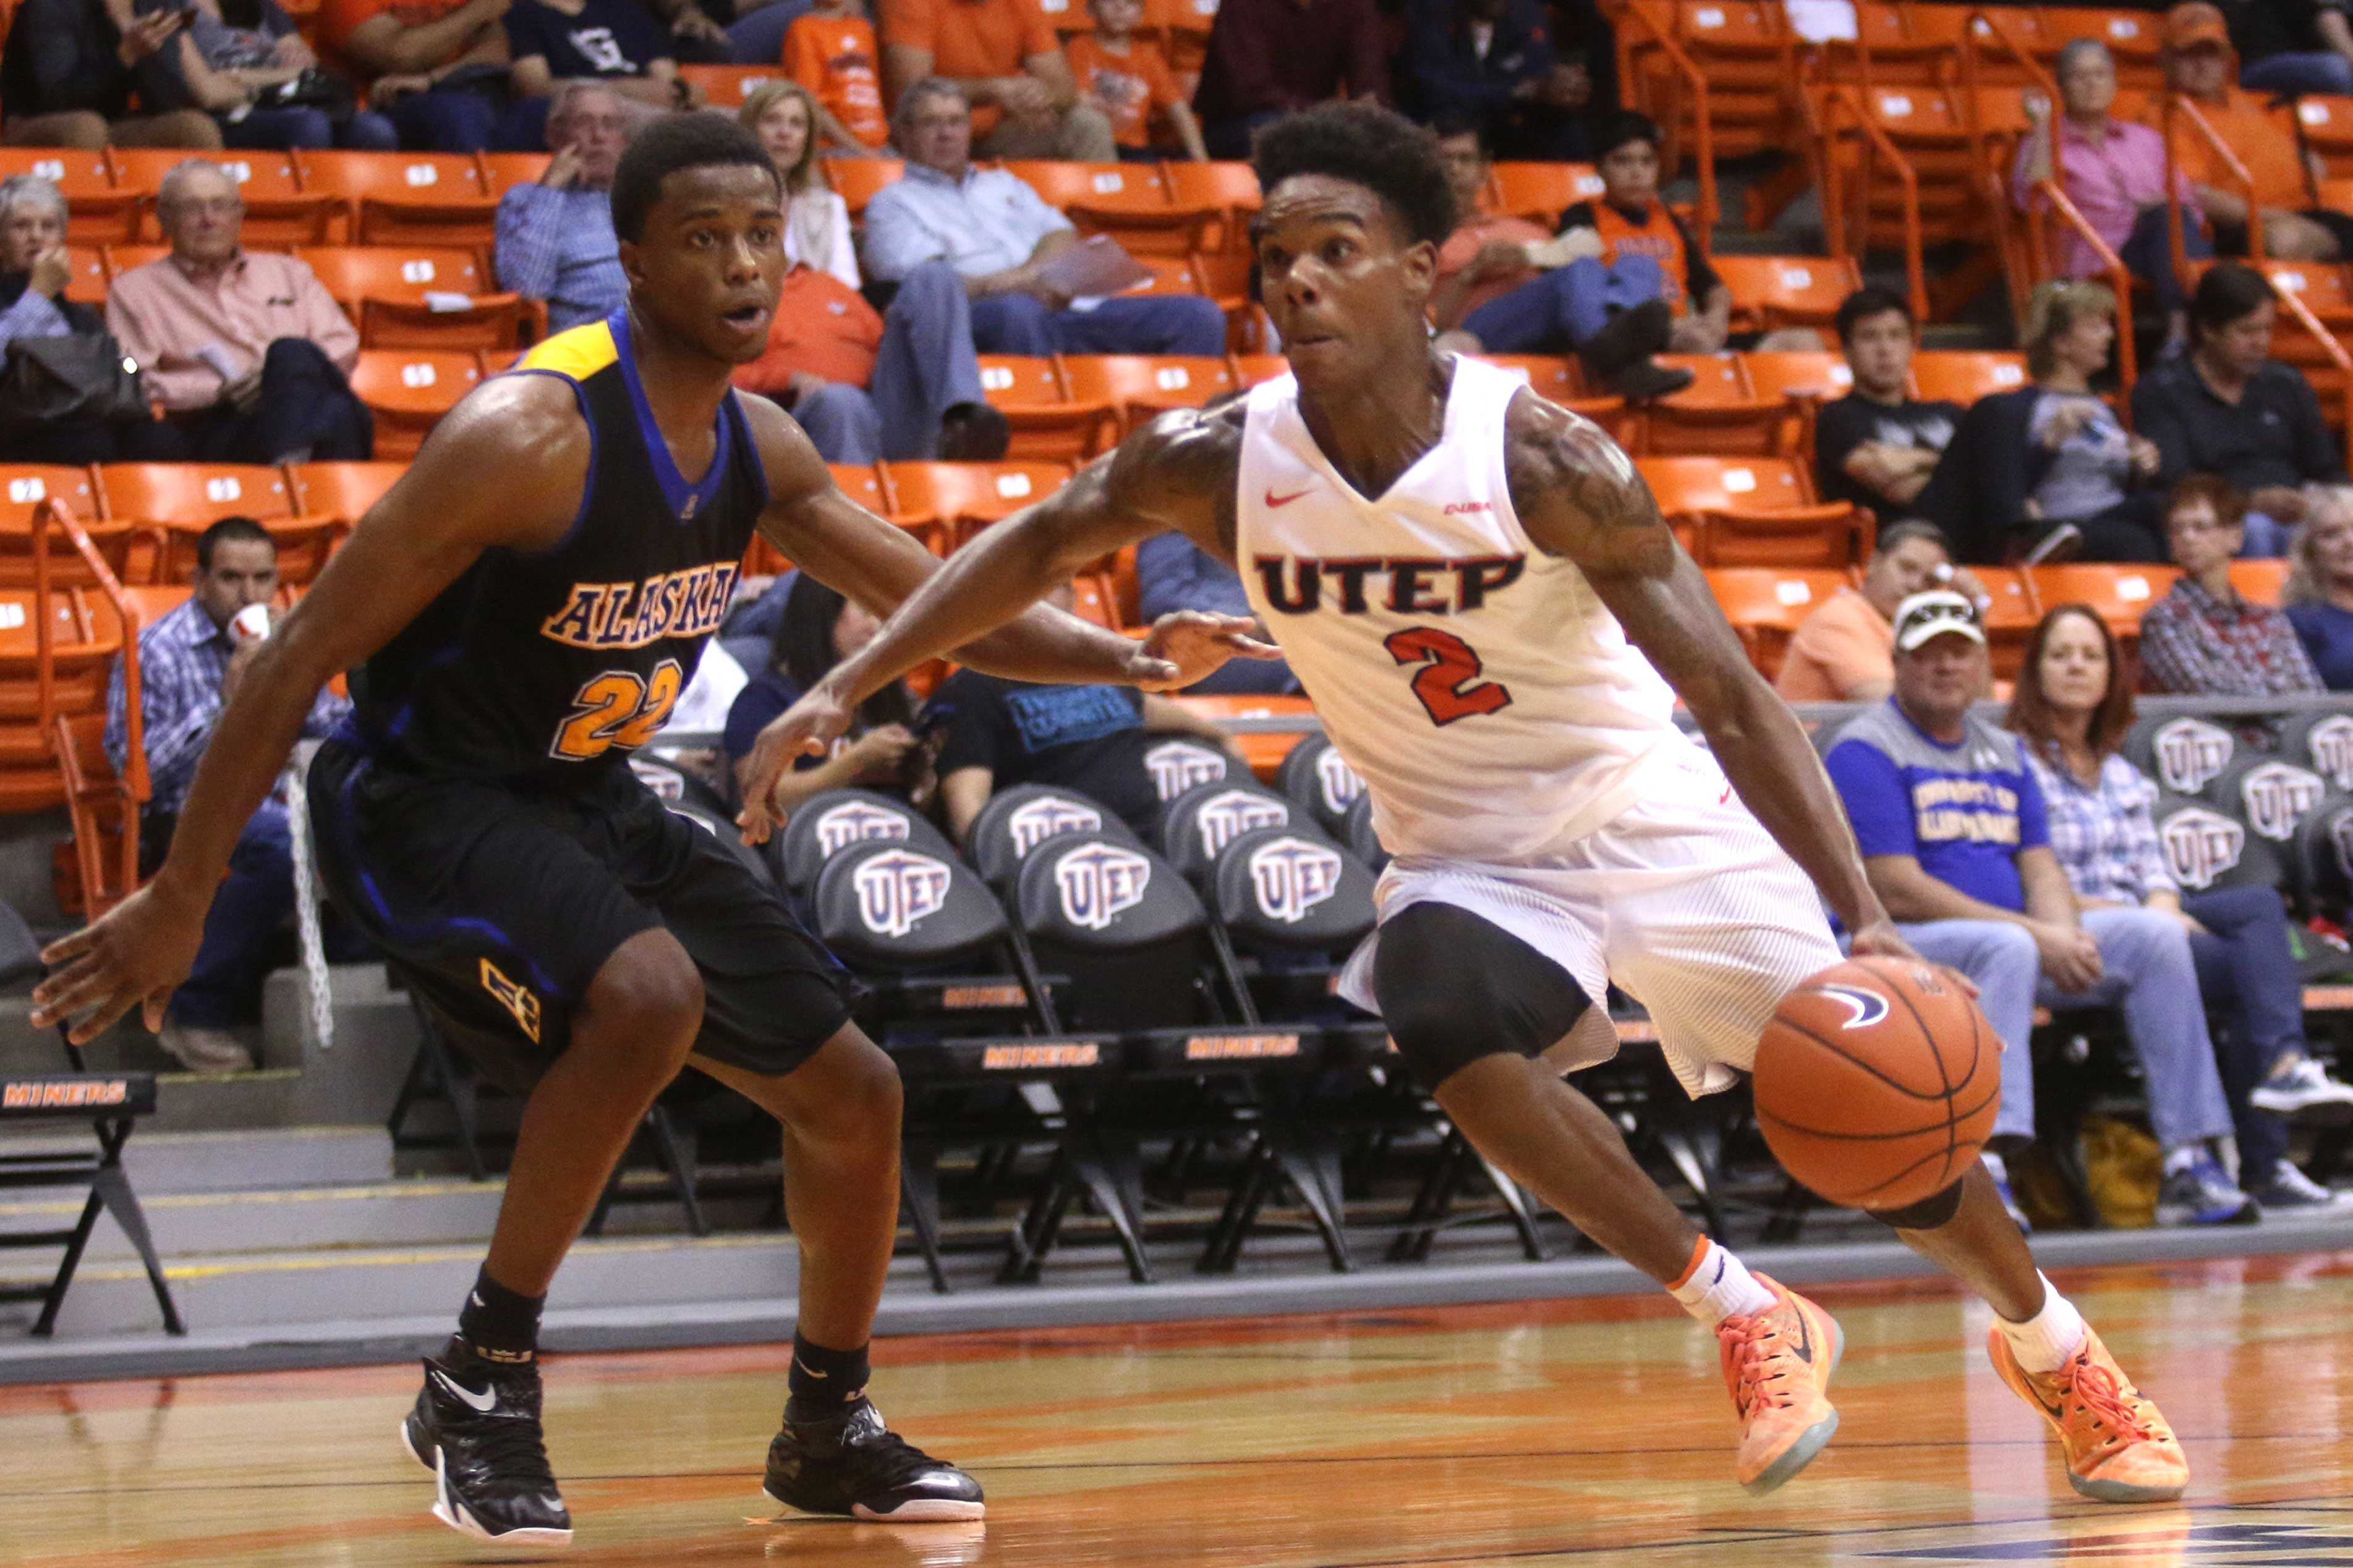 UTEP defeats the UAF nanooks, 87-85, following overtime.